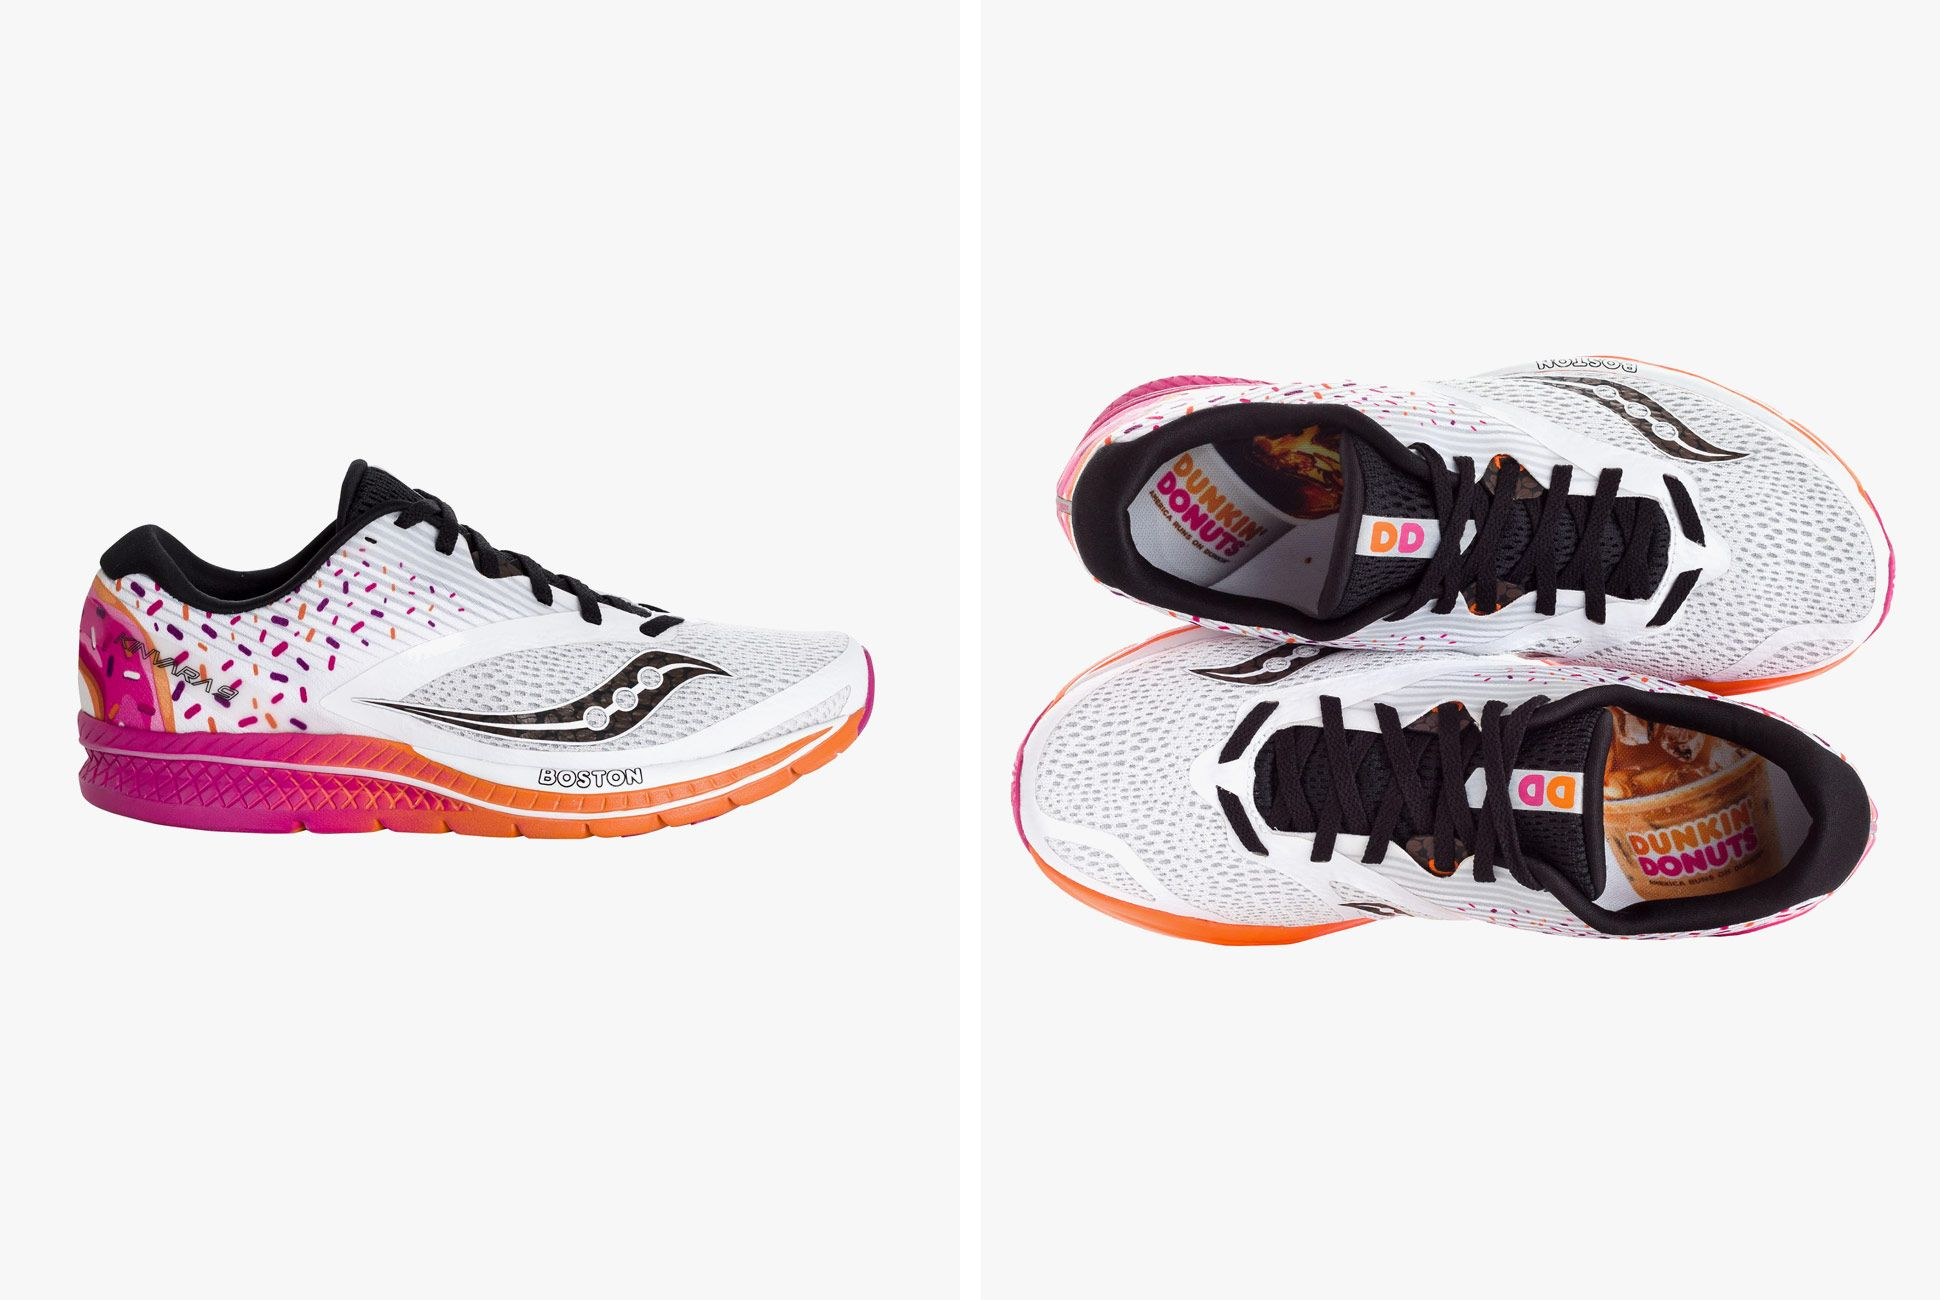 Saucony and Dunkin Donuts Team Up for